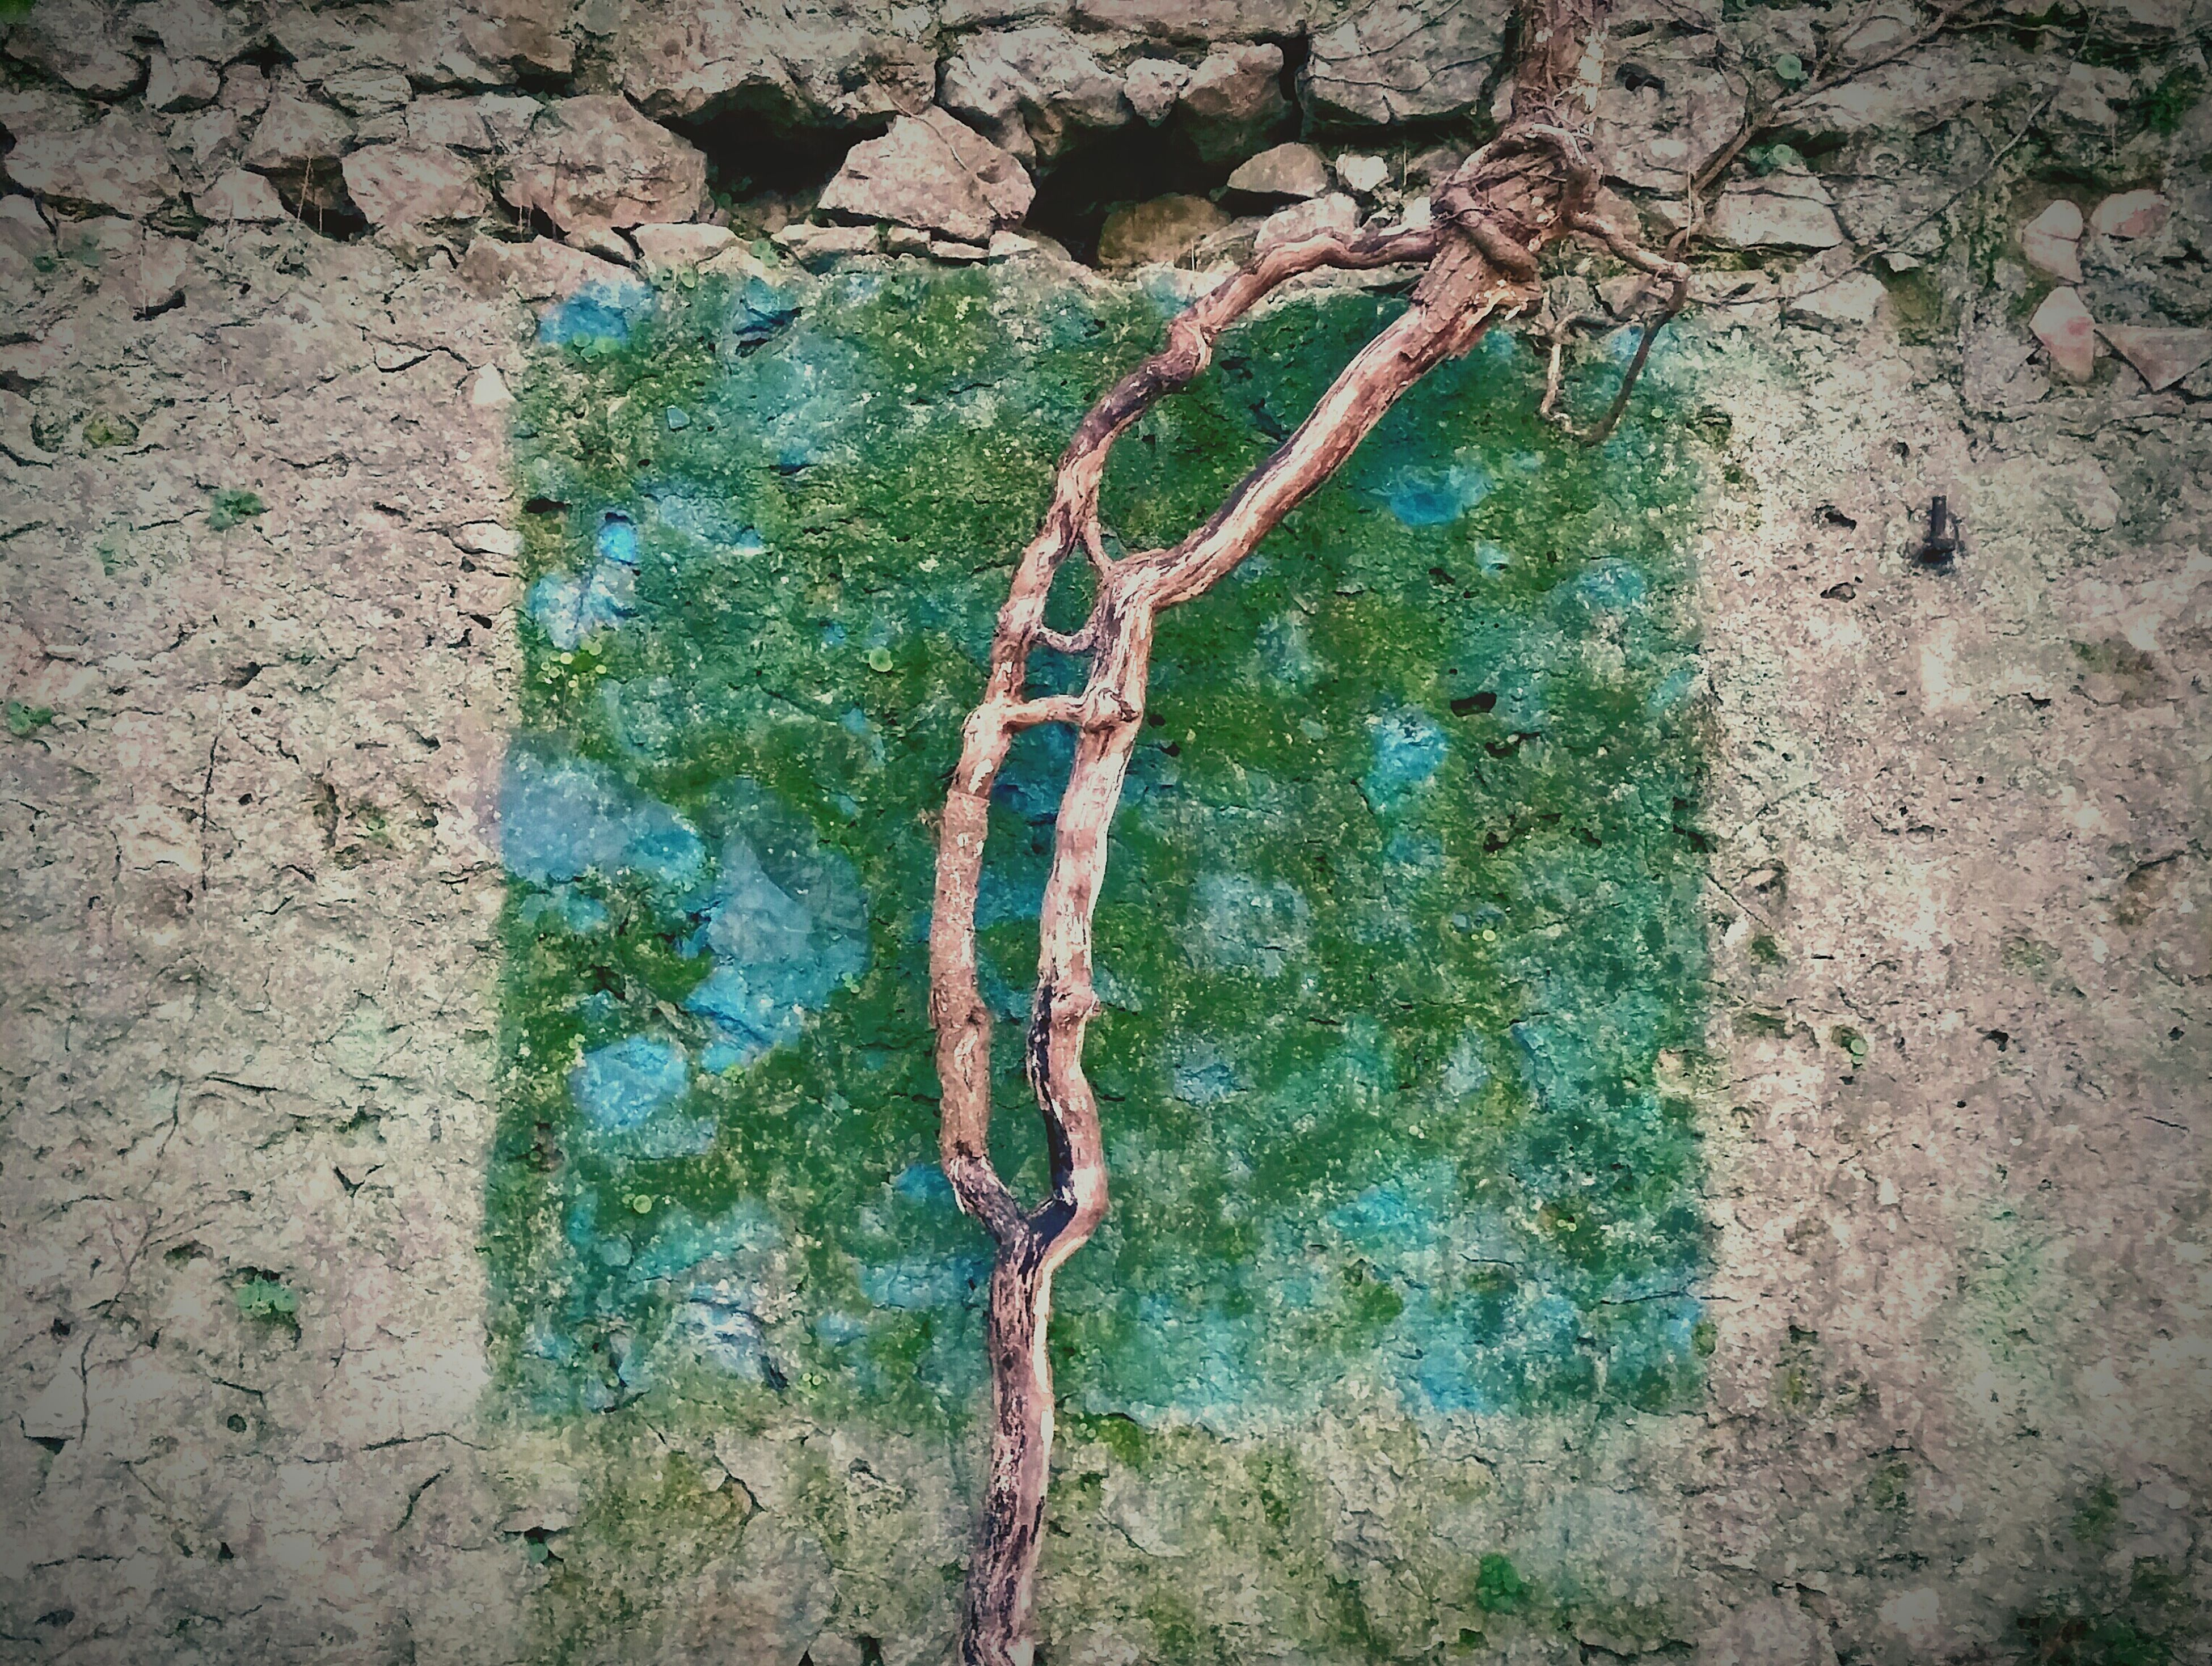 growth, wall - building feature, tree, plant, tree trunk, textured, green color, nature, built structure, day, outdoors, no people, ivy, architecture, wall, stone wall, high angle view, growing, branch, rough